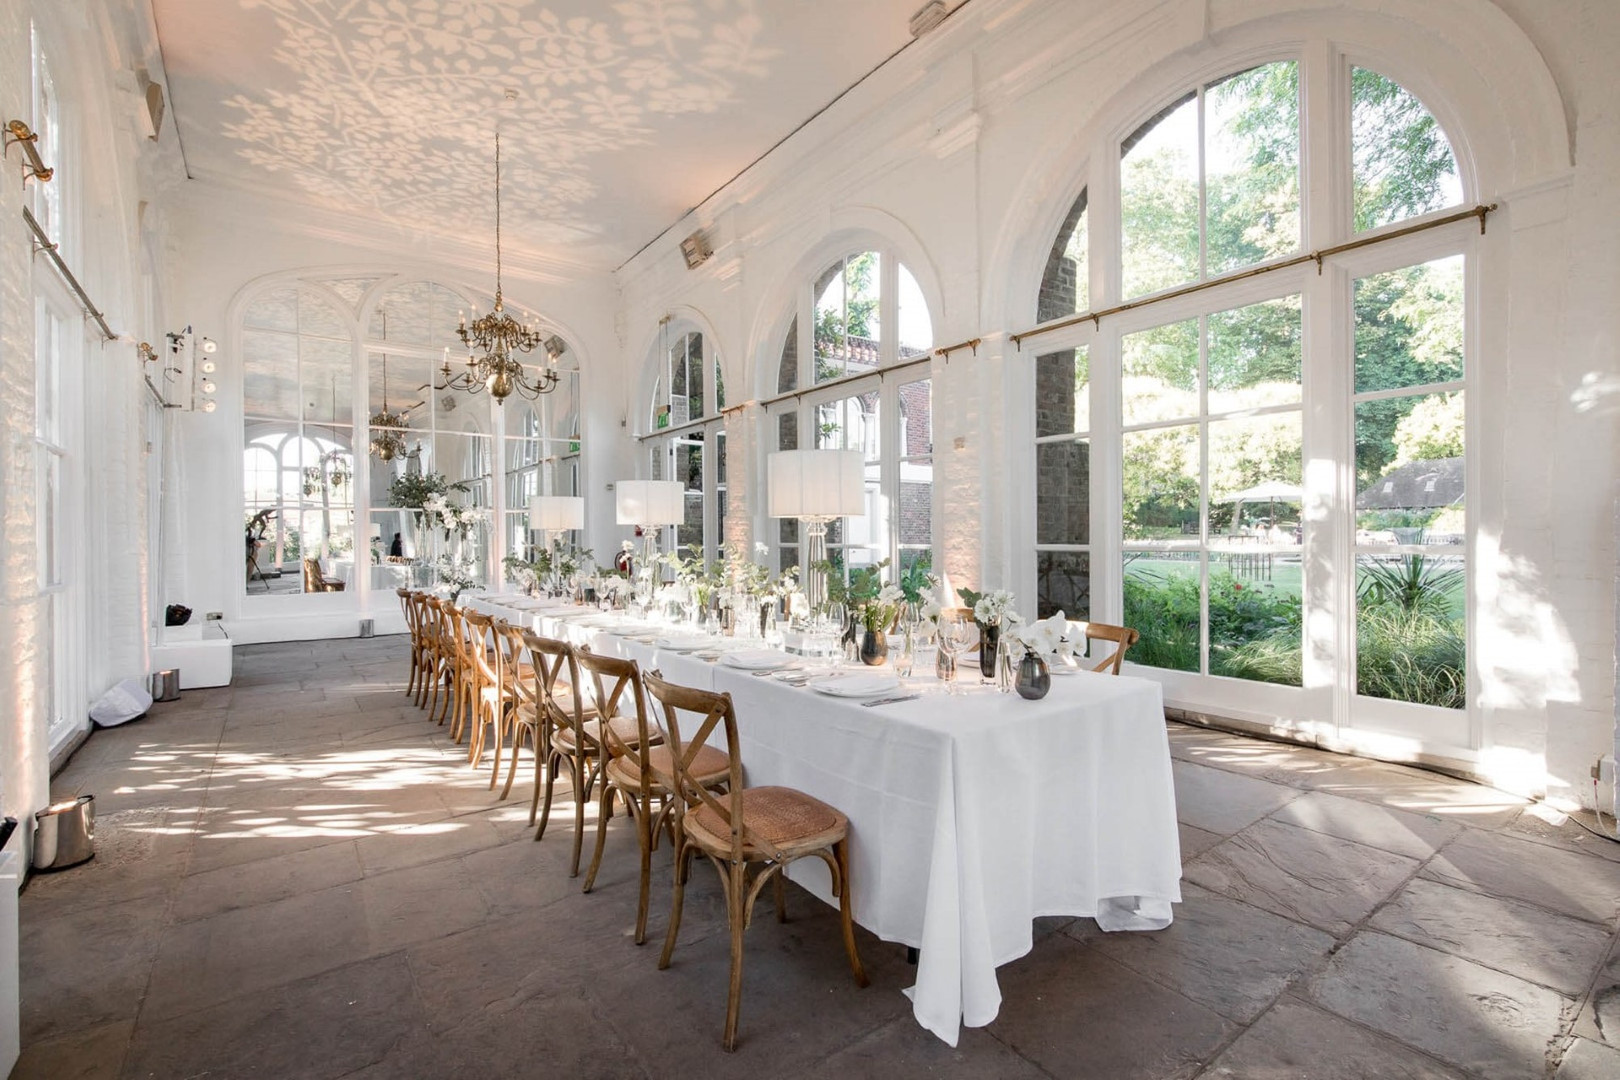 1585677879-holland-park-orangery-large-1